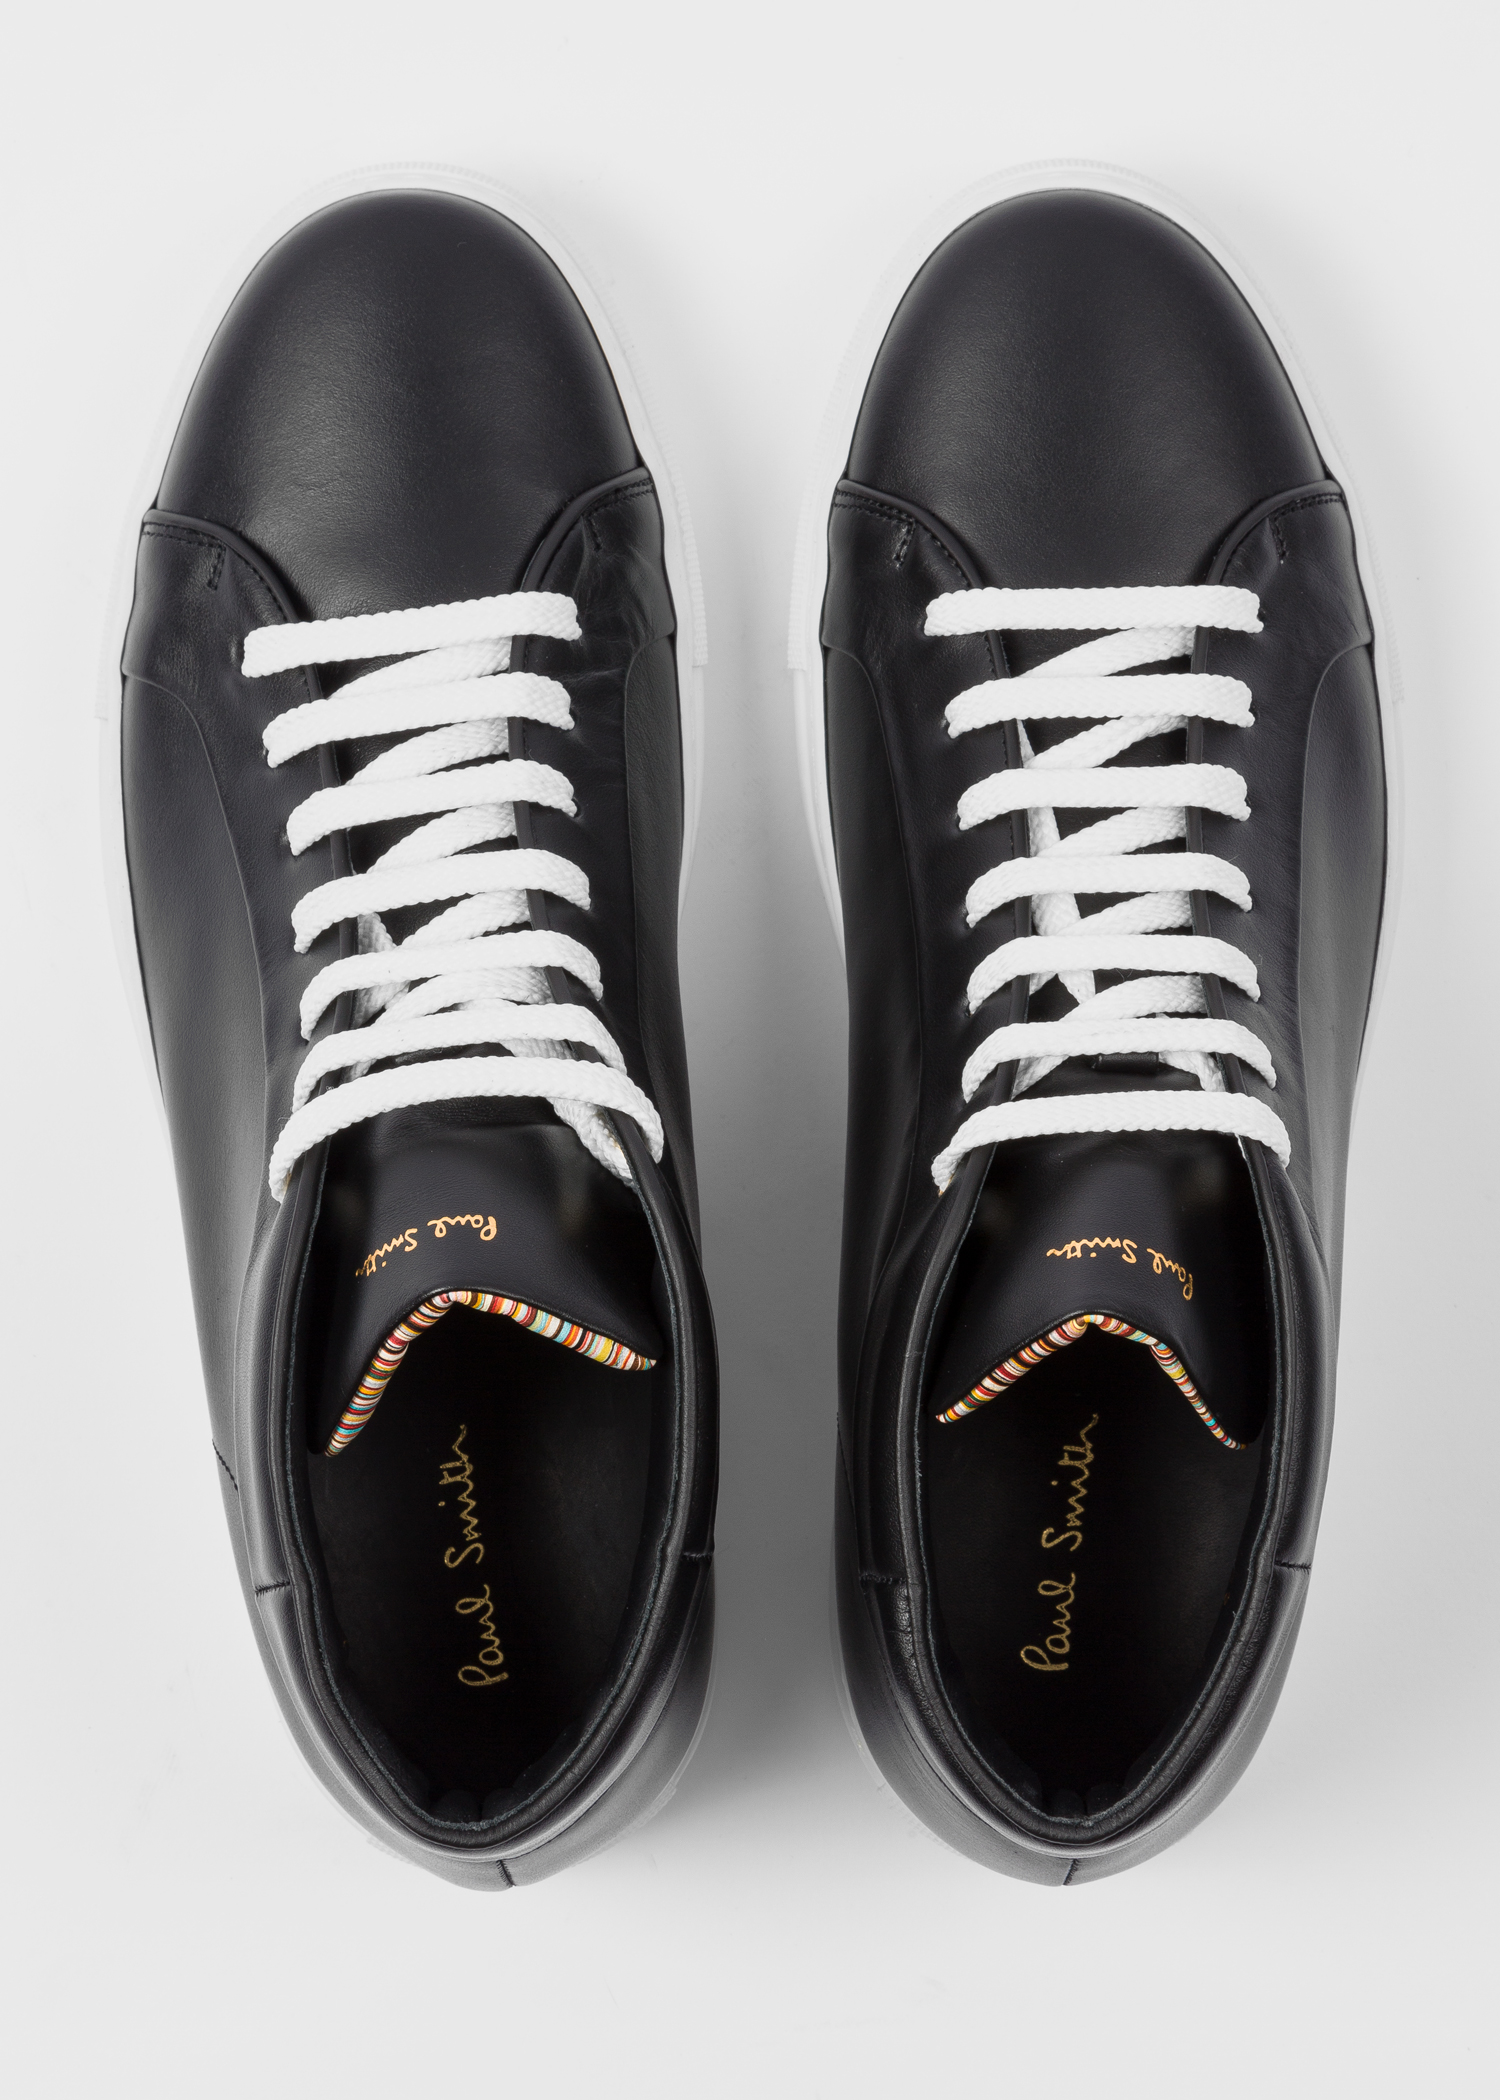 ddd816d4c Front view - Men's Black Leather 'Ace' High-Top Trainers Paul Smith